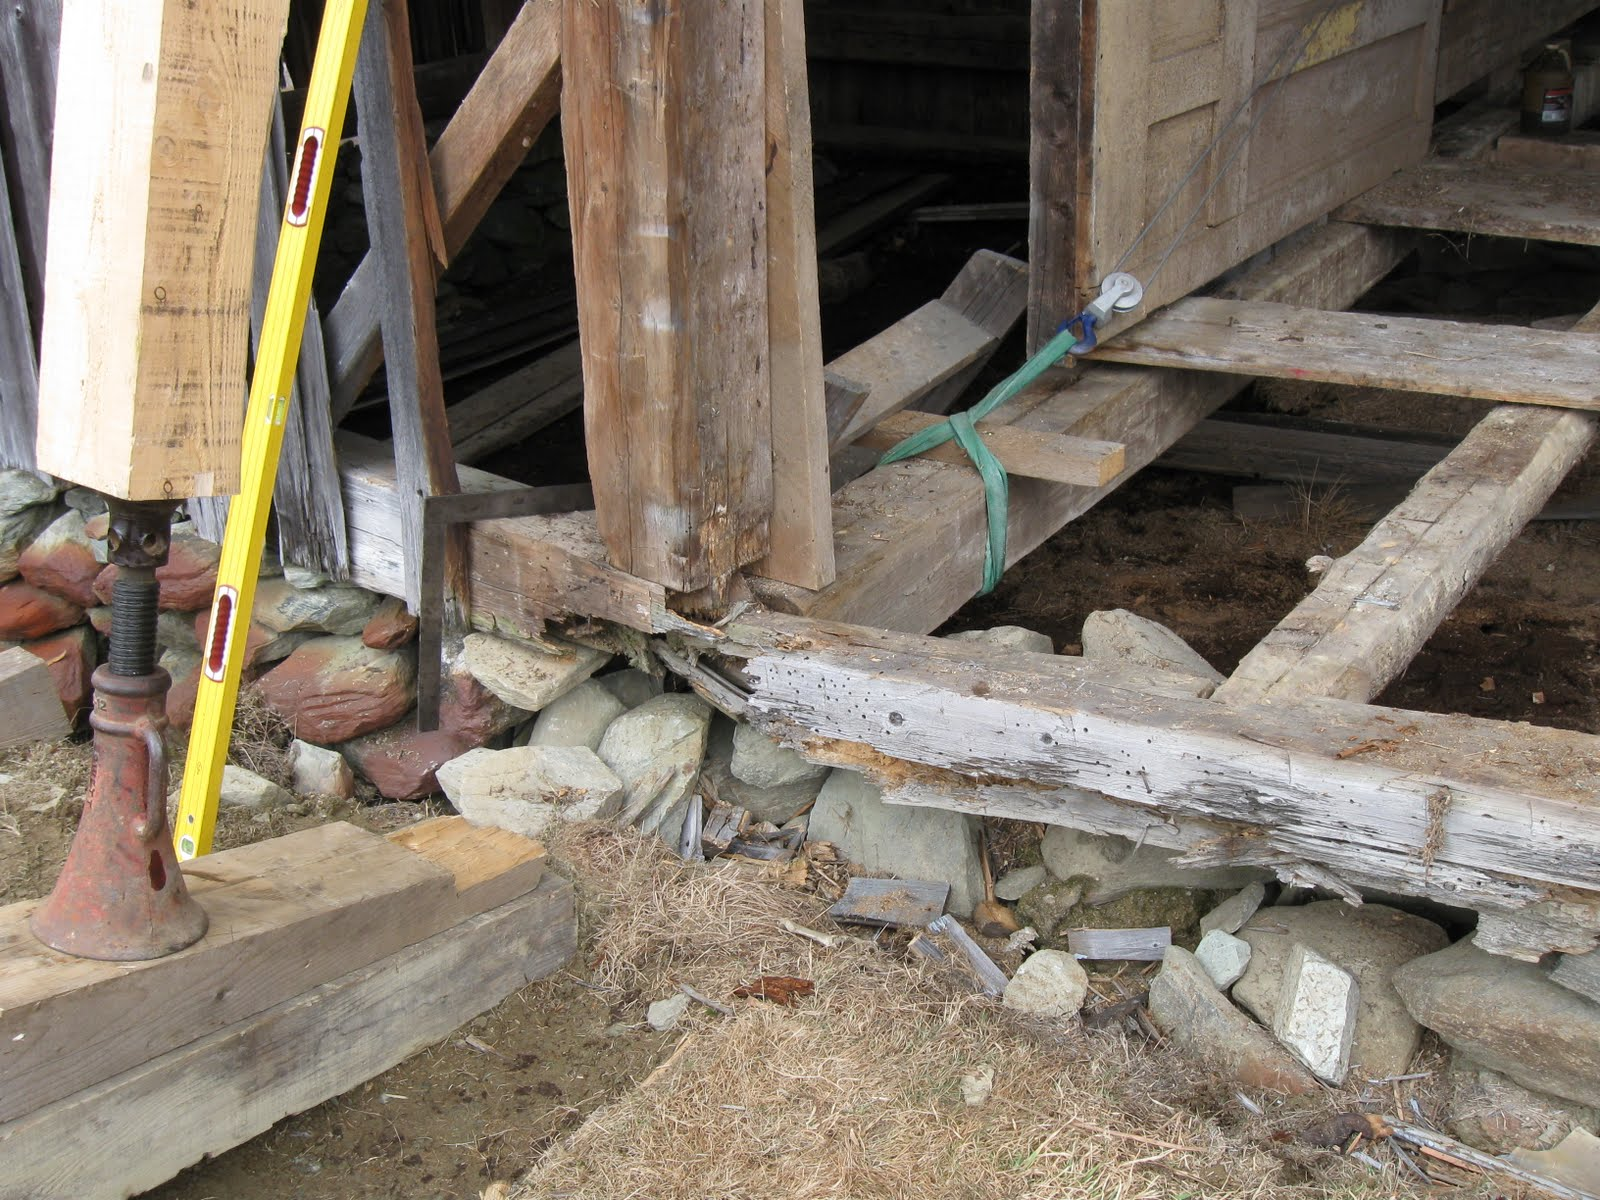 Insect and water damage destroyed most of the sill timbers.